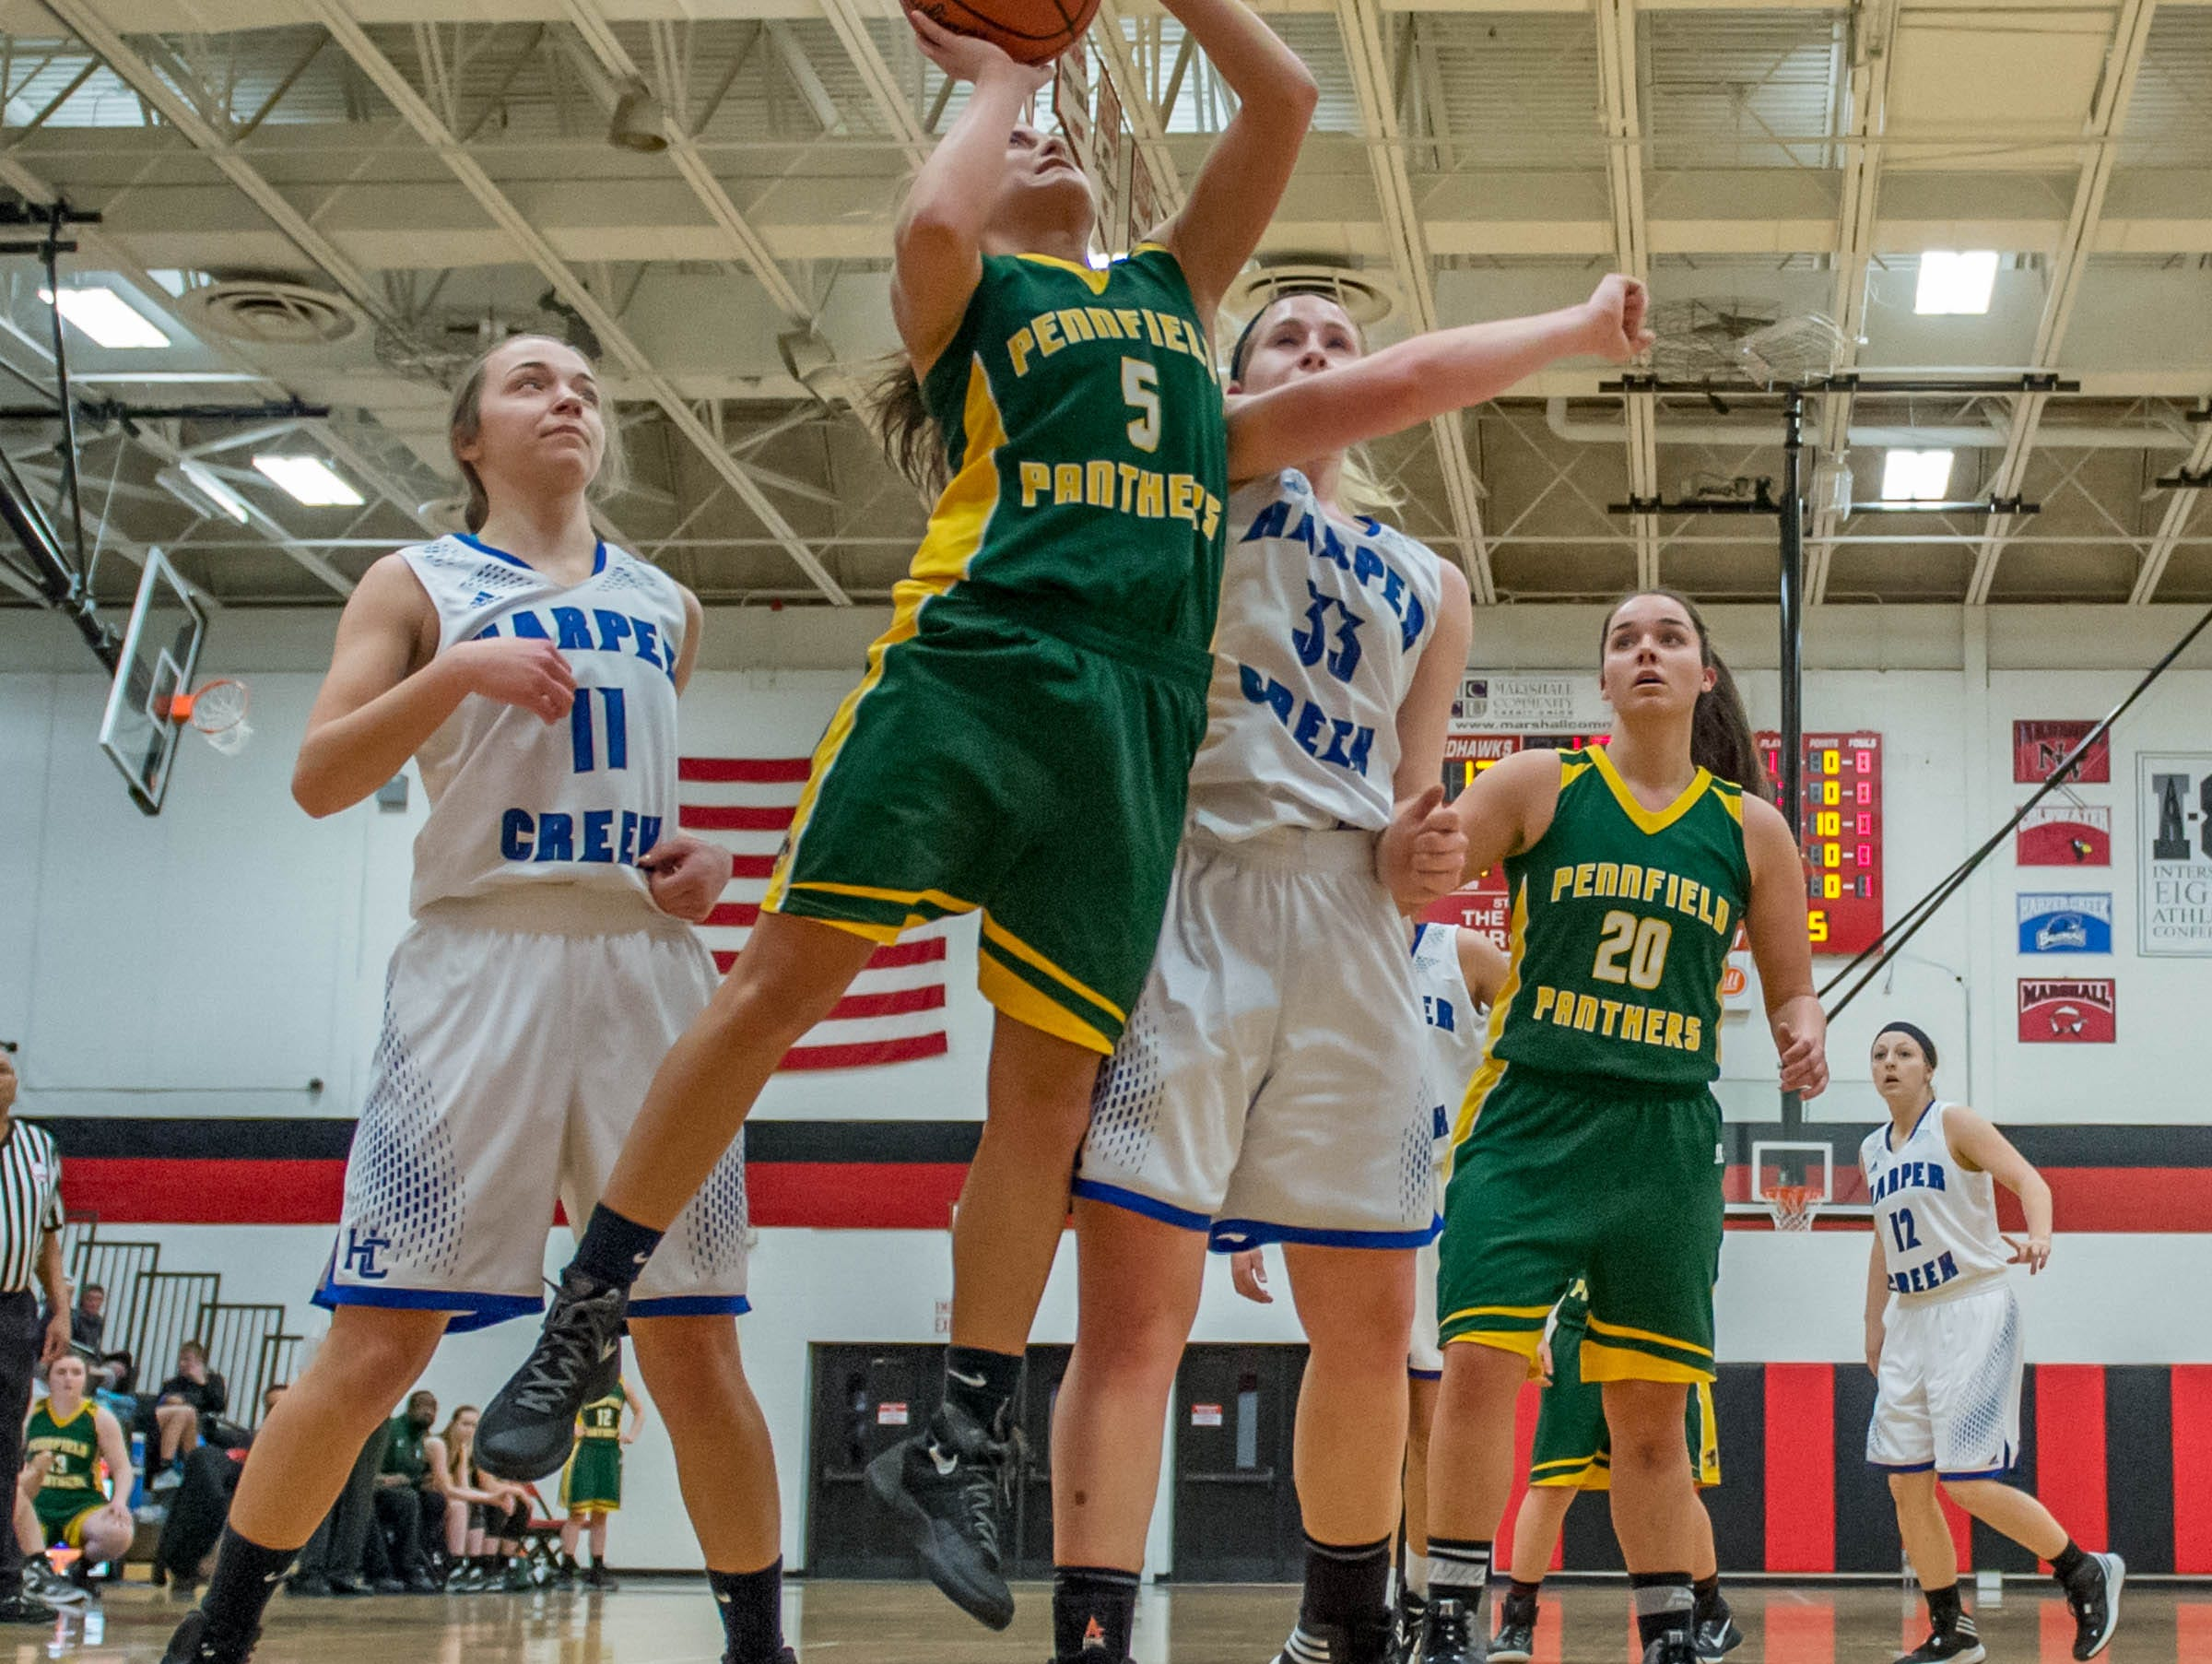 Pennfield's Jessica ROAN (5) goes for the layup in first round of districts game at Marshall Monday evening.